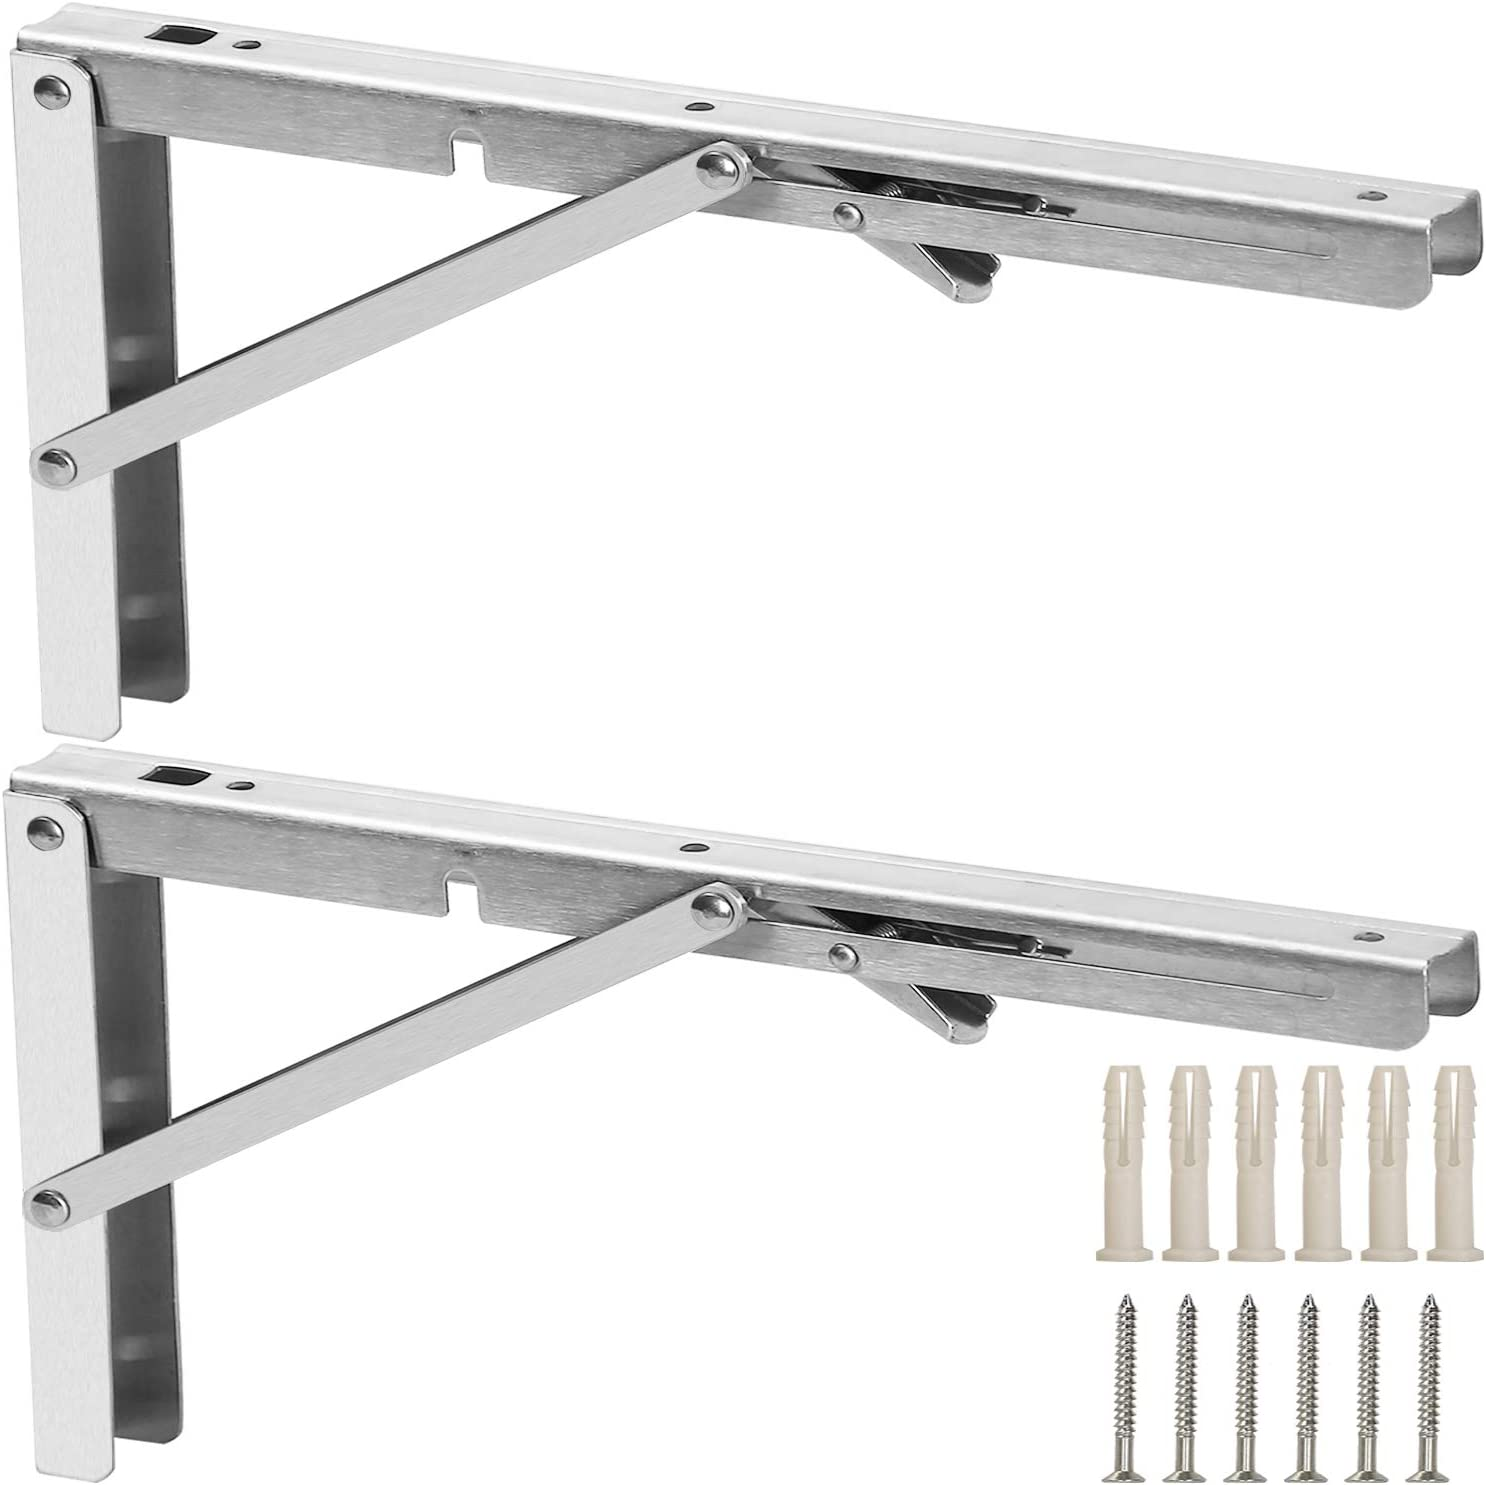 330lb FreeTec Long Release Arm Polished Stainless Steel Folding Shelf Bracket 12 Wall Bench Table Max Load